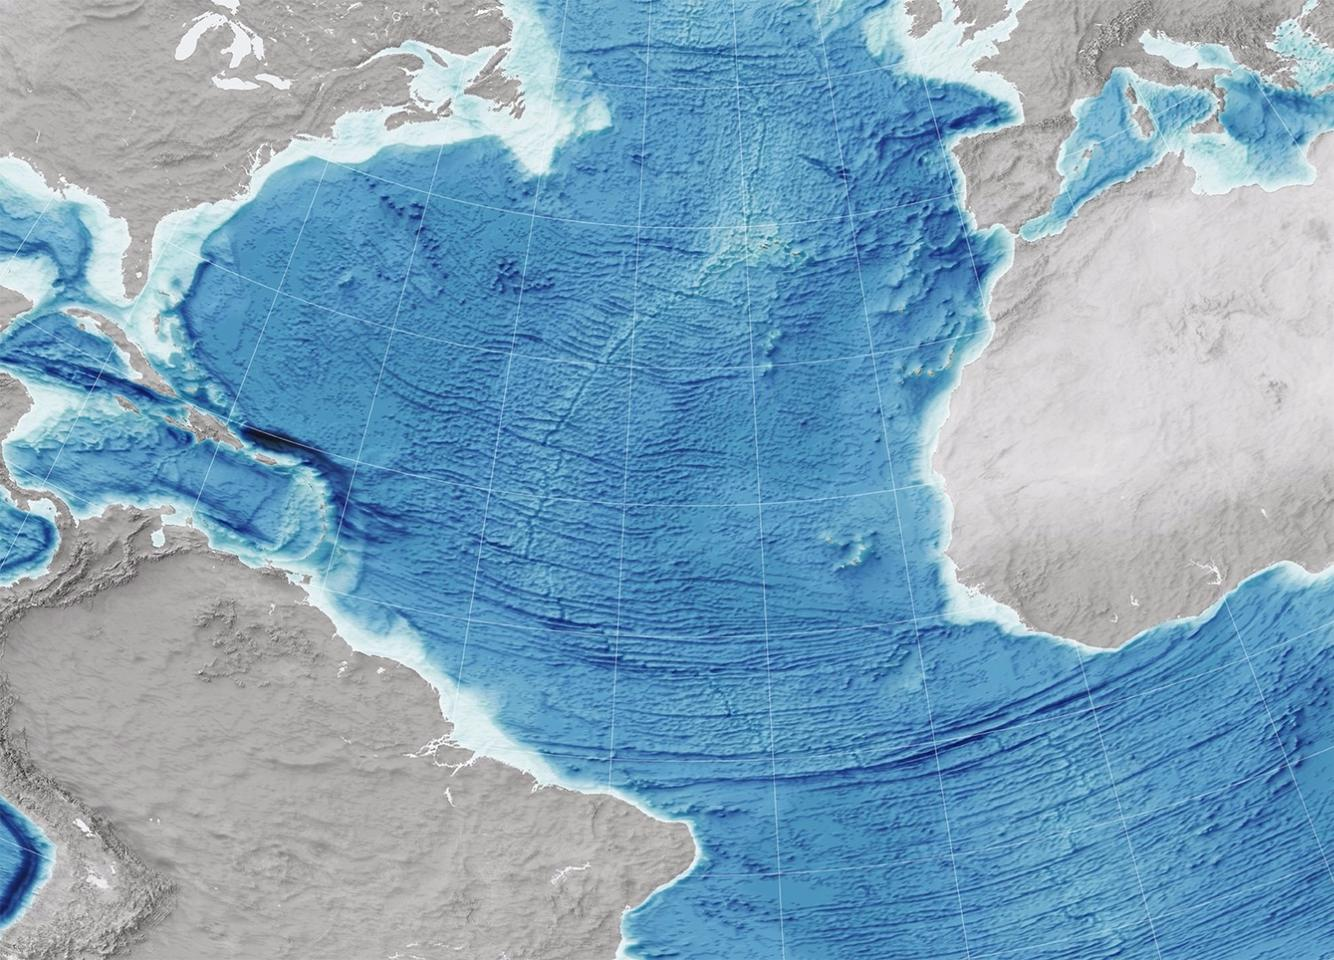 Relief map of the Atlantic Ocean